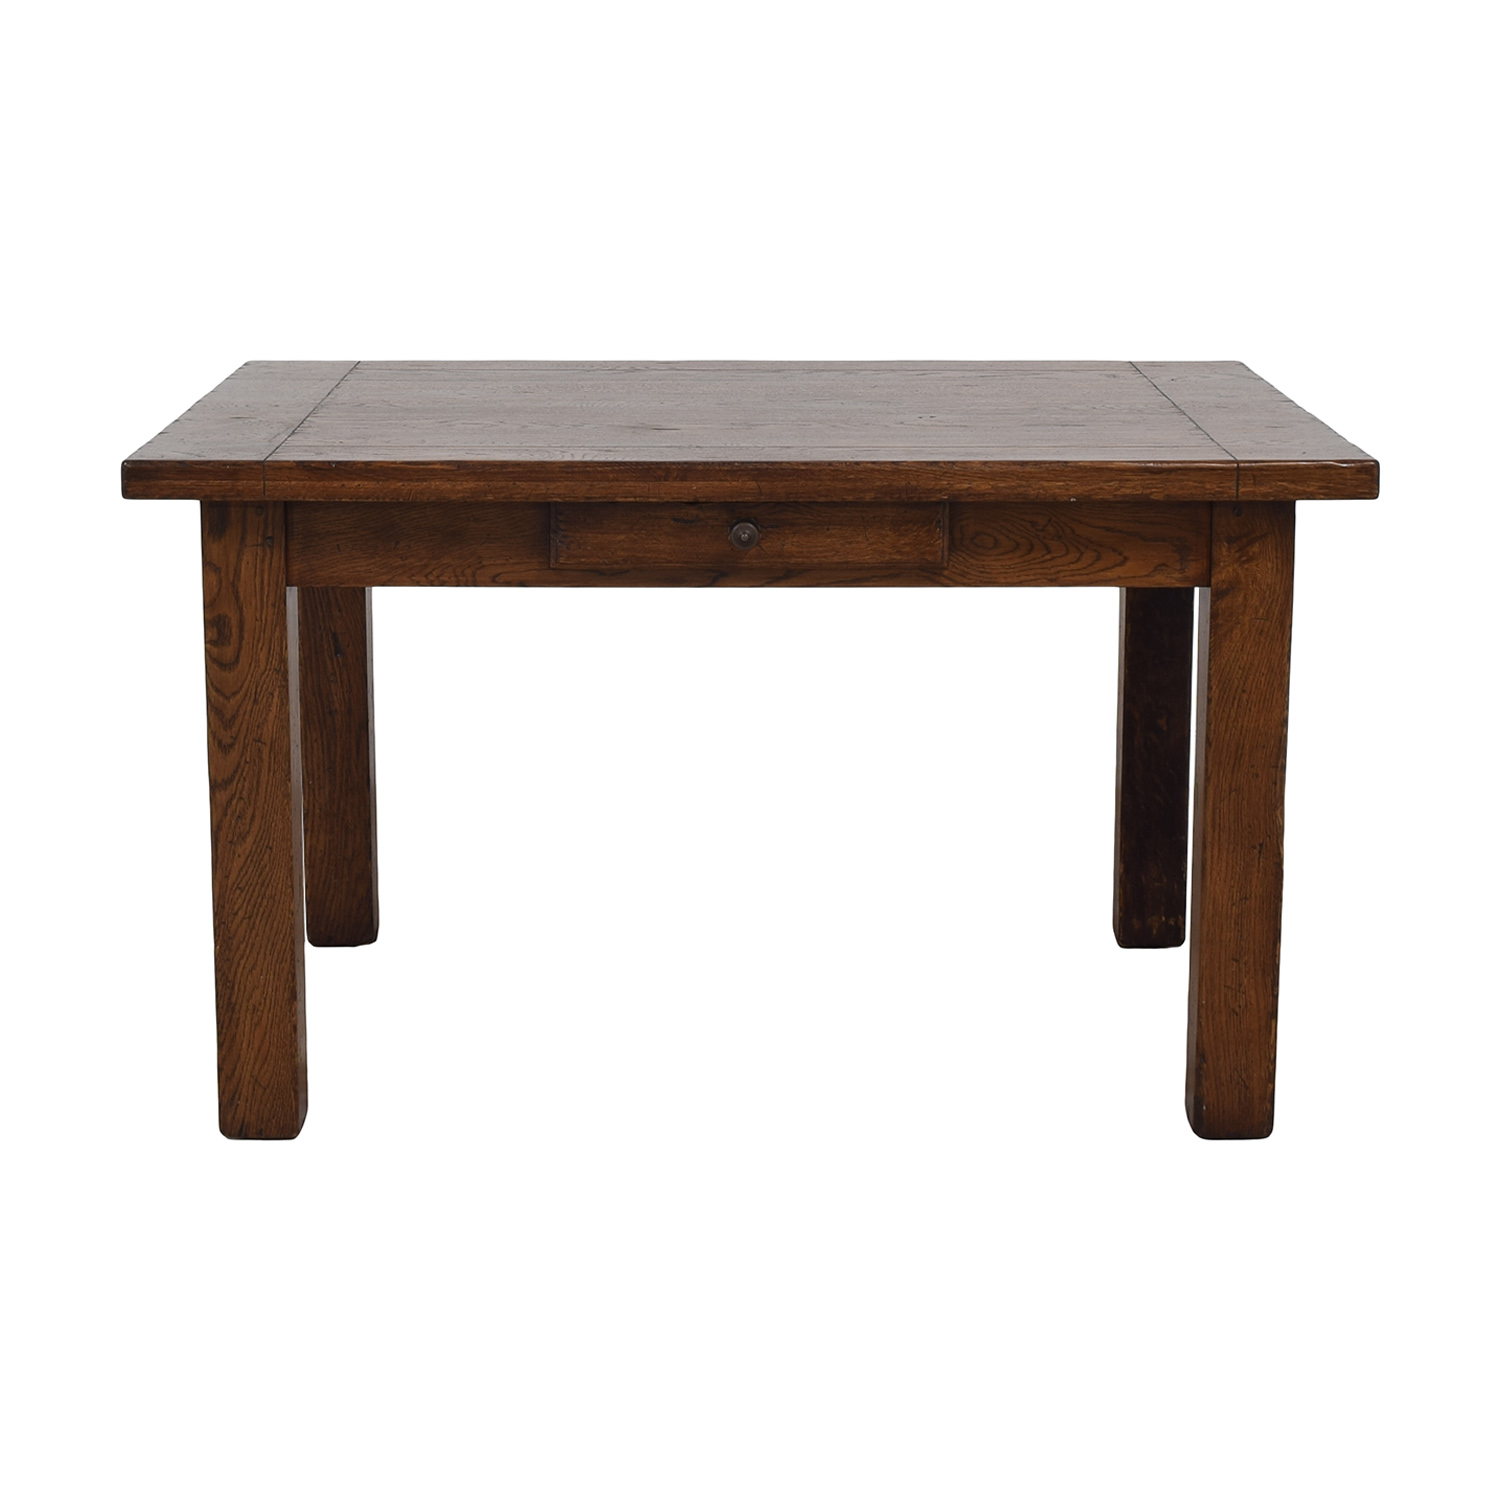 ABC Carpet & Home Dining Table / Dinner Tables